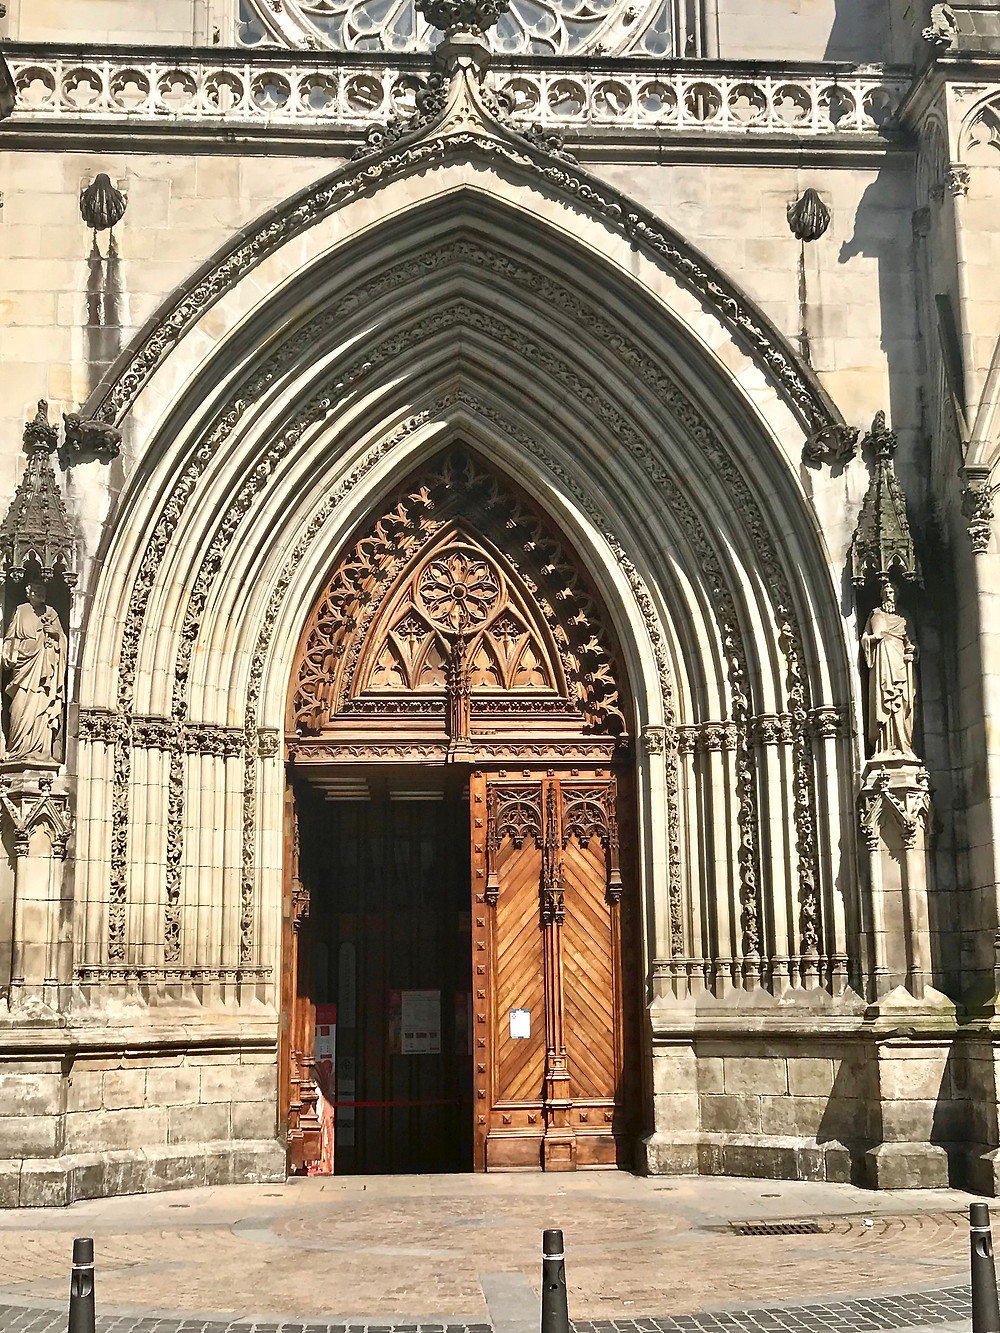 ornate doorway of the 14th century Santiago Cathedral in old town Bilbao